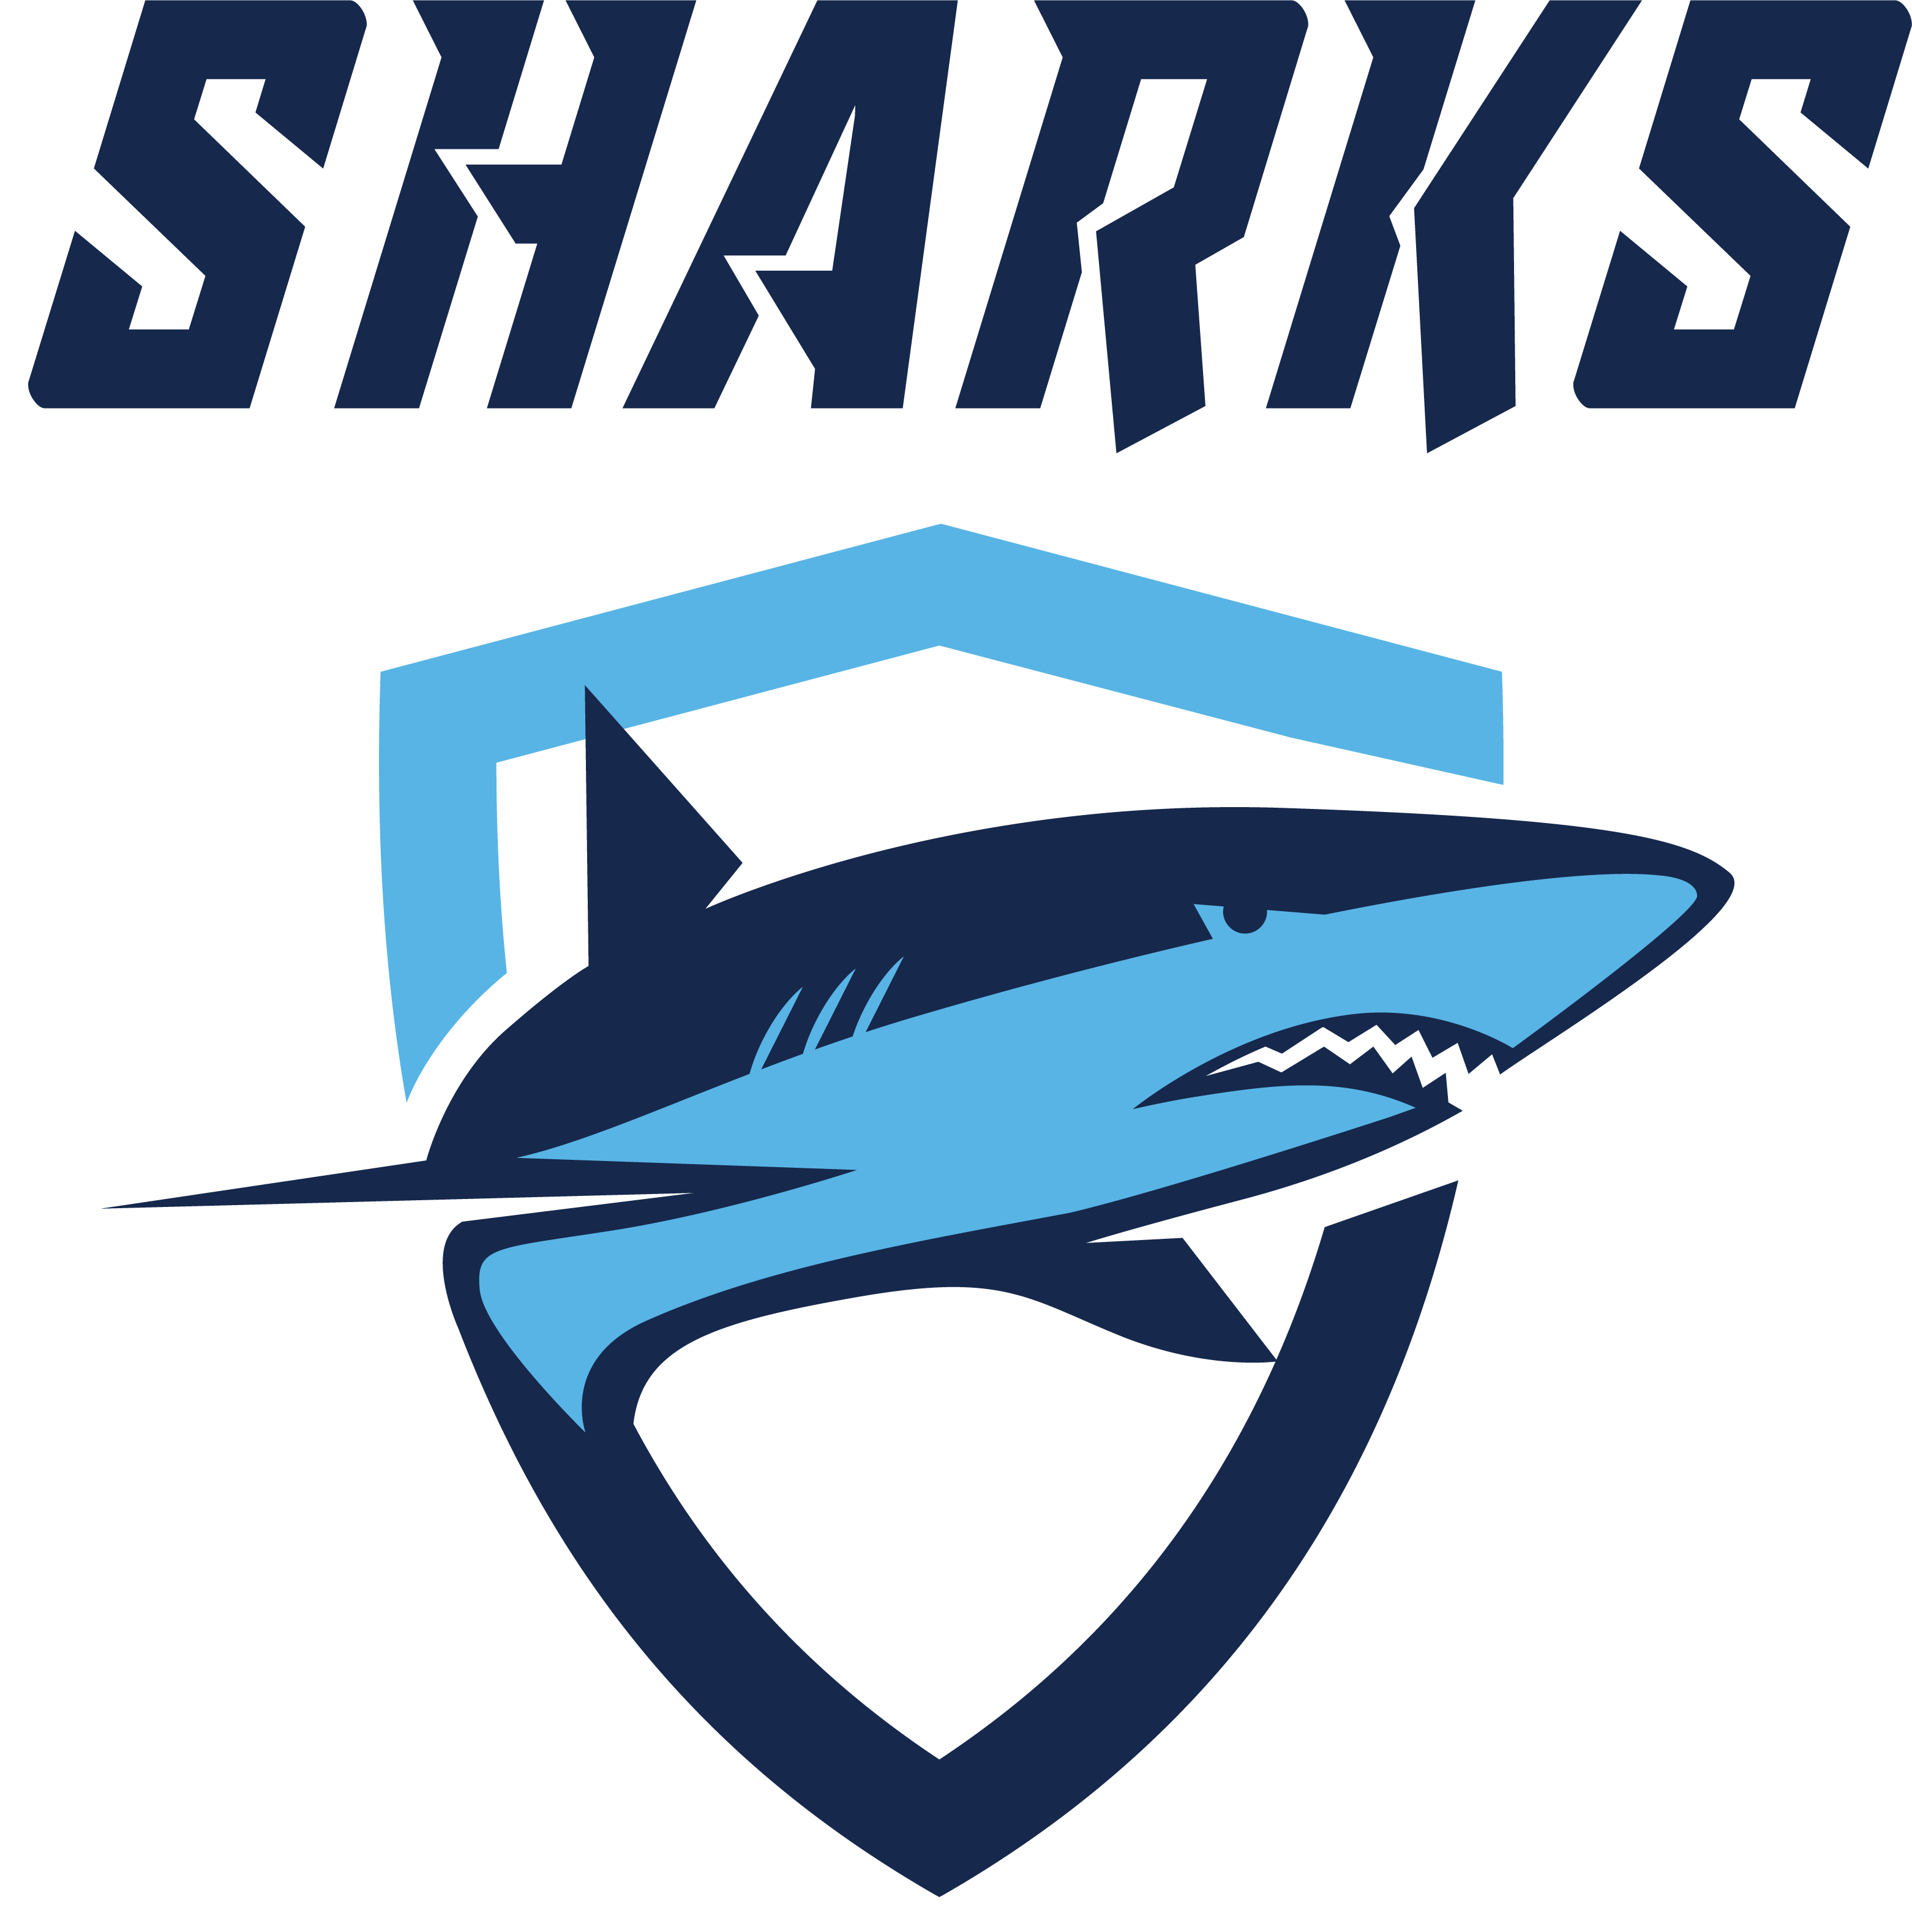 SHARKS Swim Club